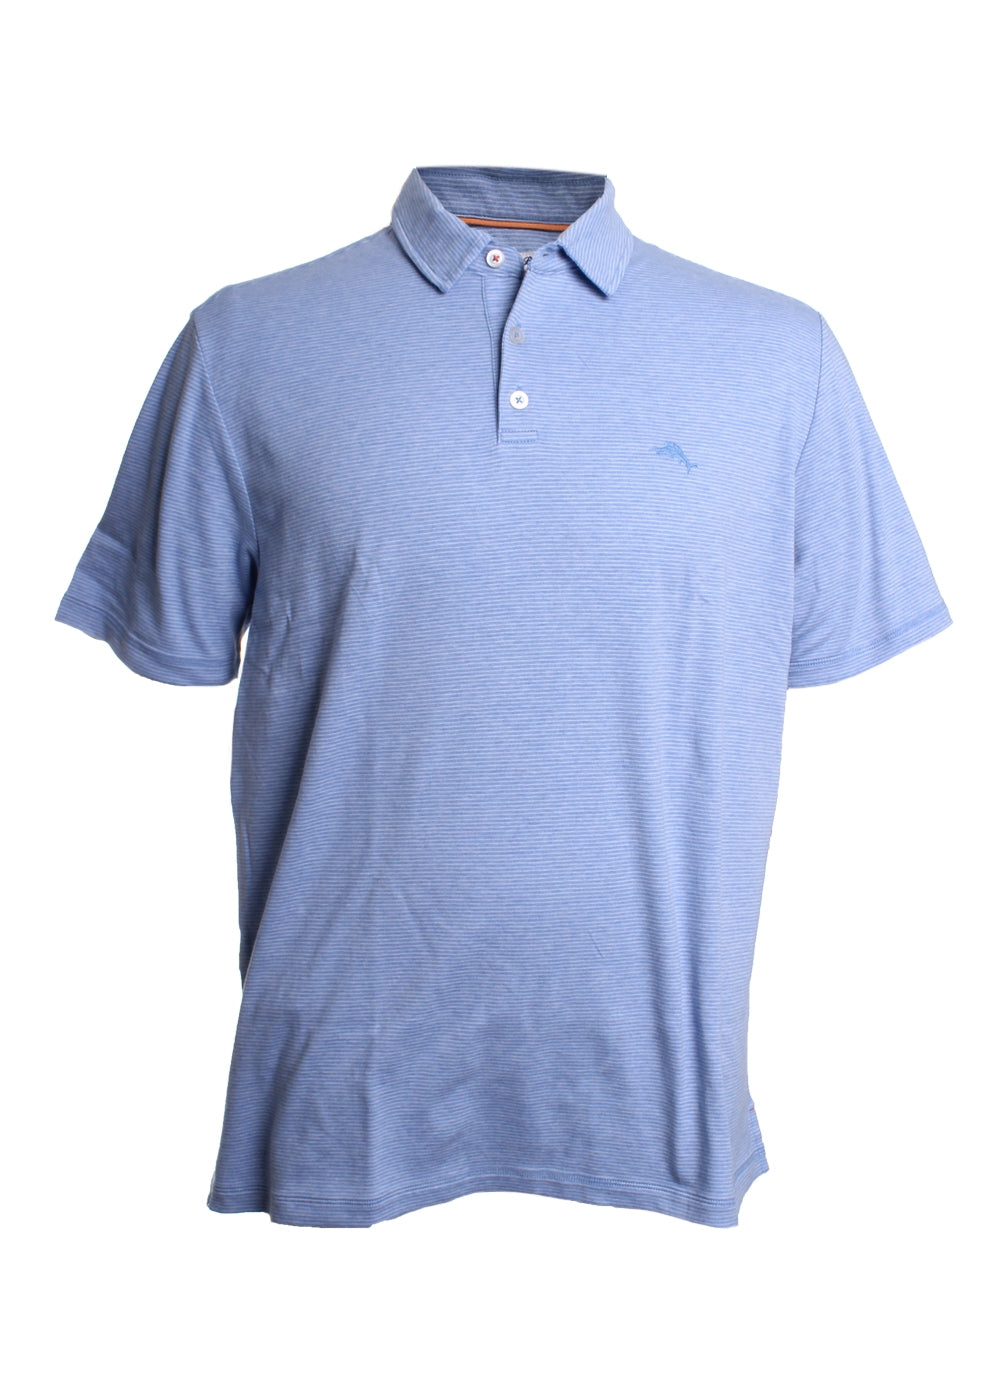 Pacific Shore Cotton Striped Polo